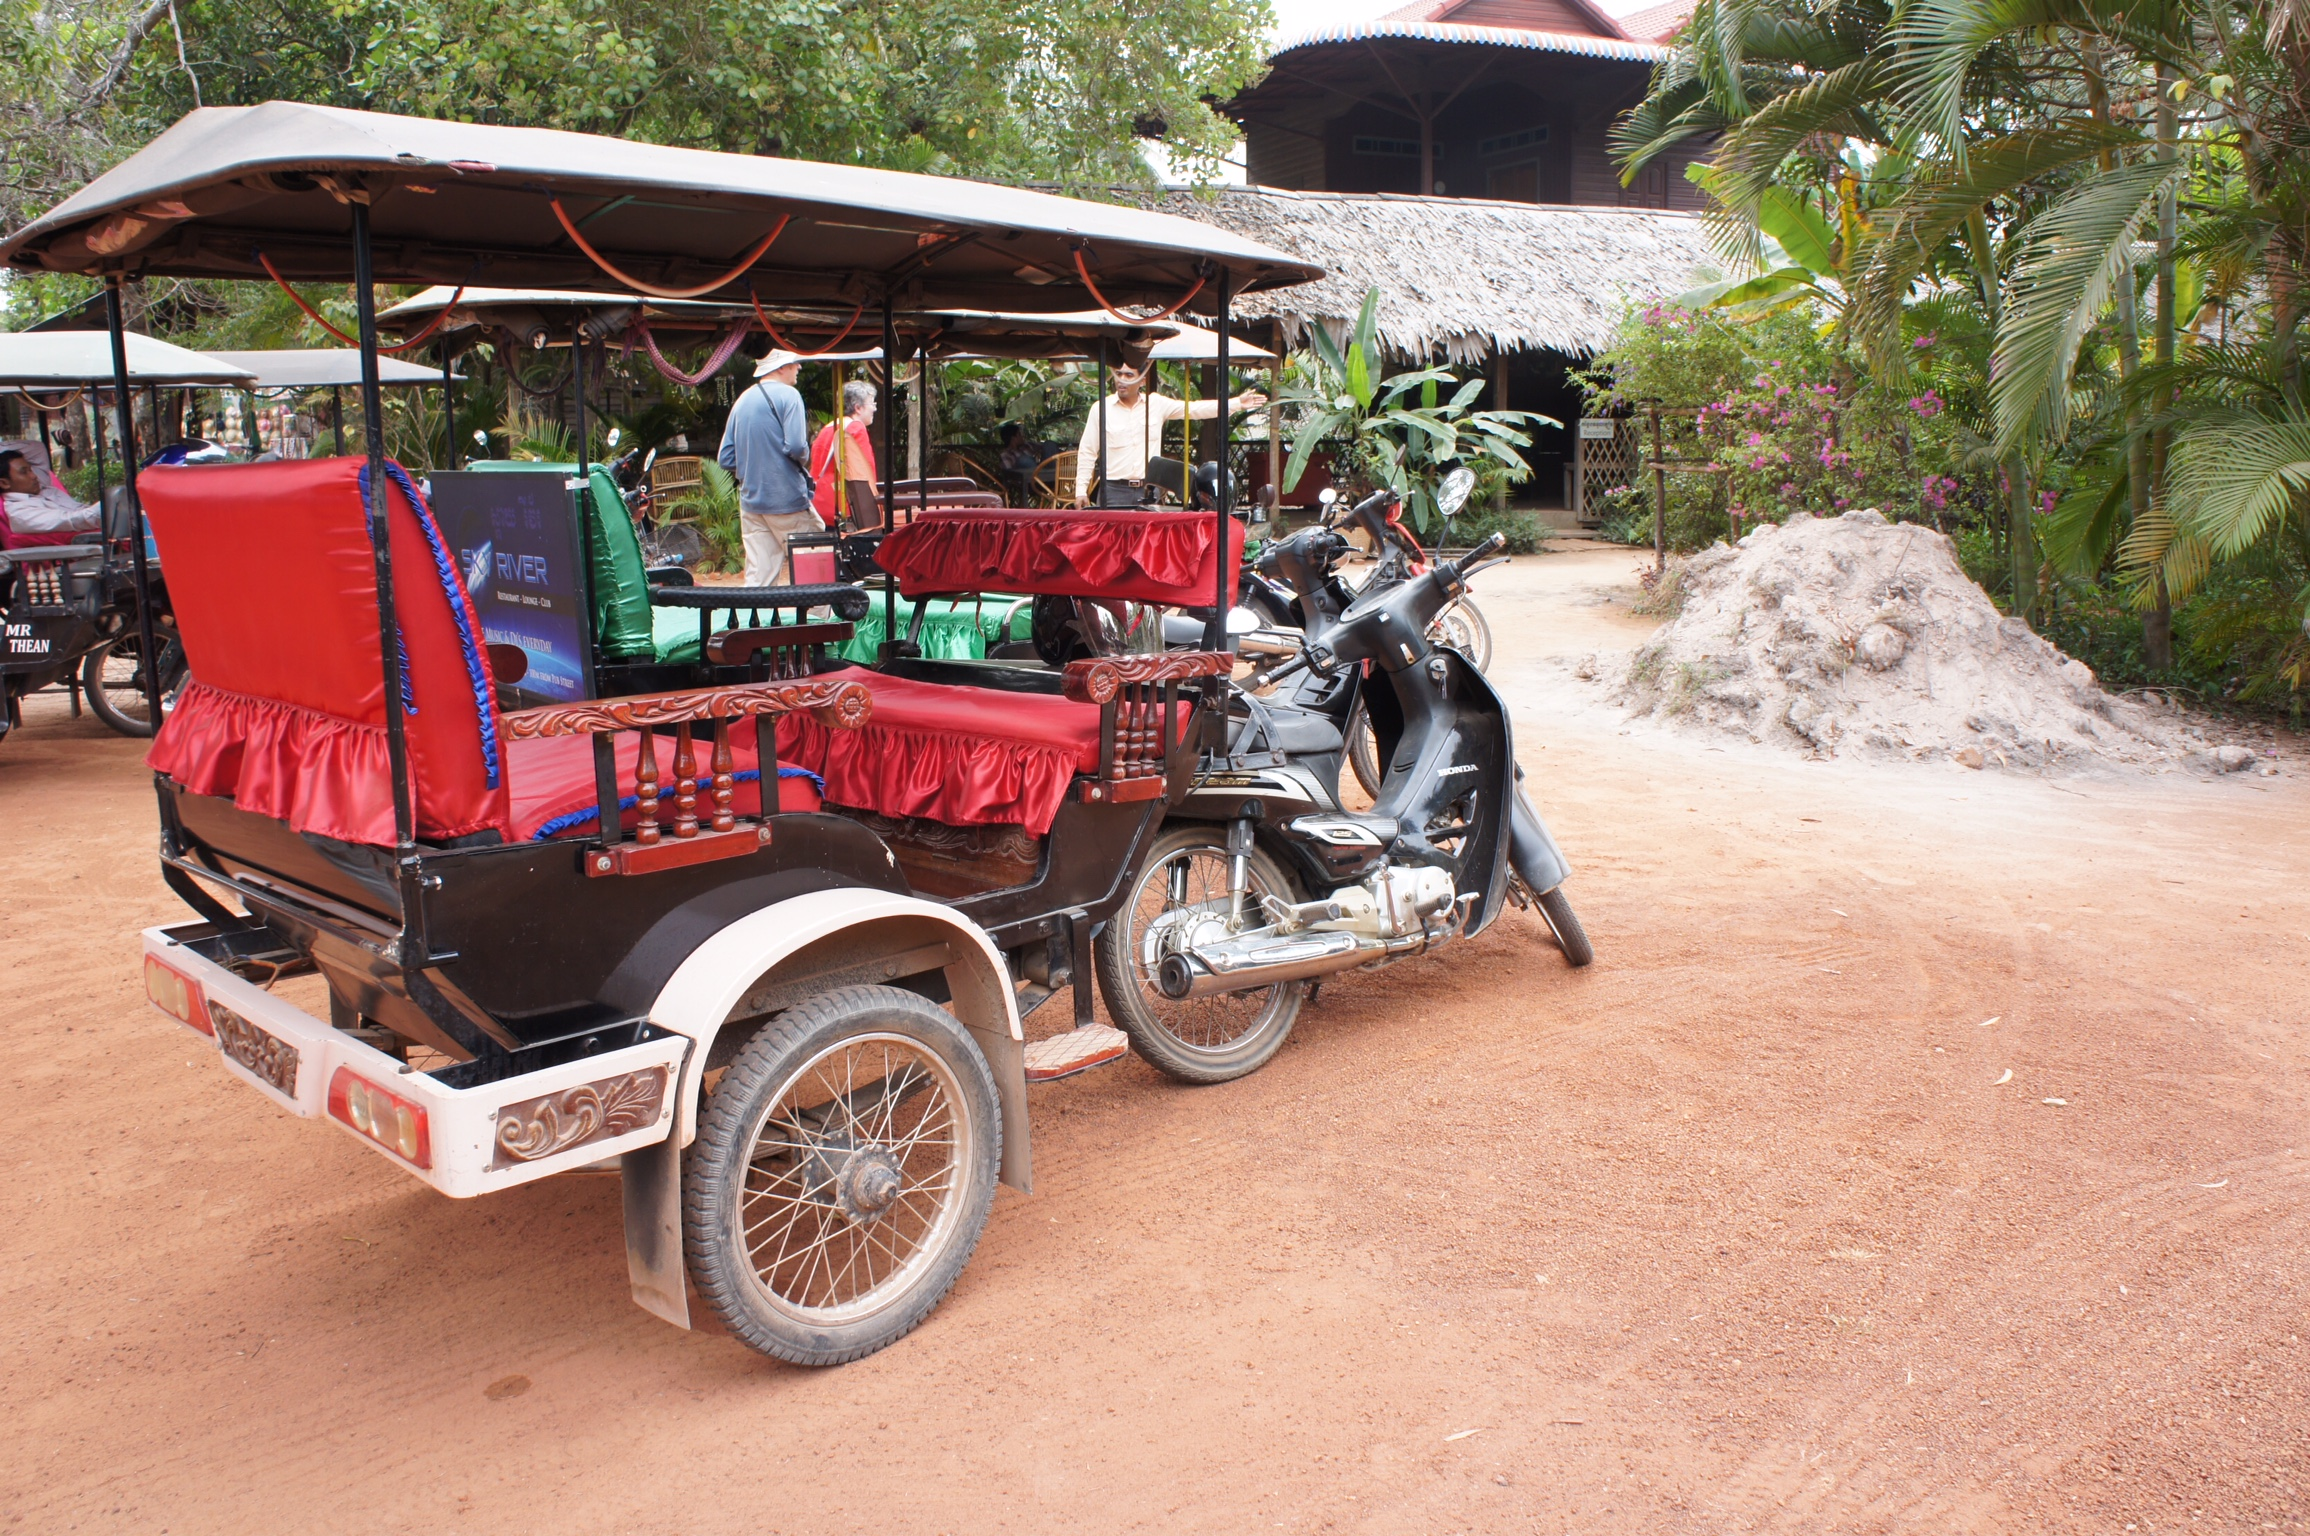 In the cities, people typically get around on tuc tucs. A ride is only a few USD with haggling.